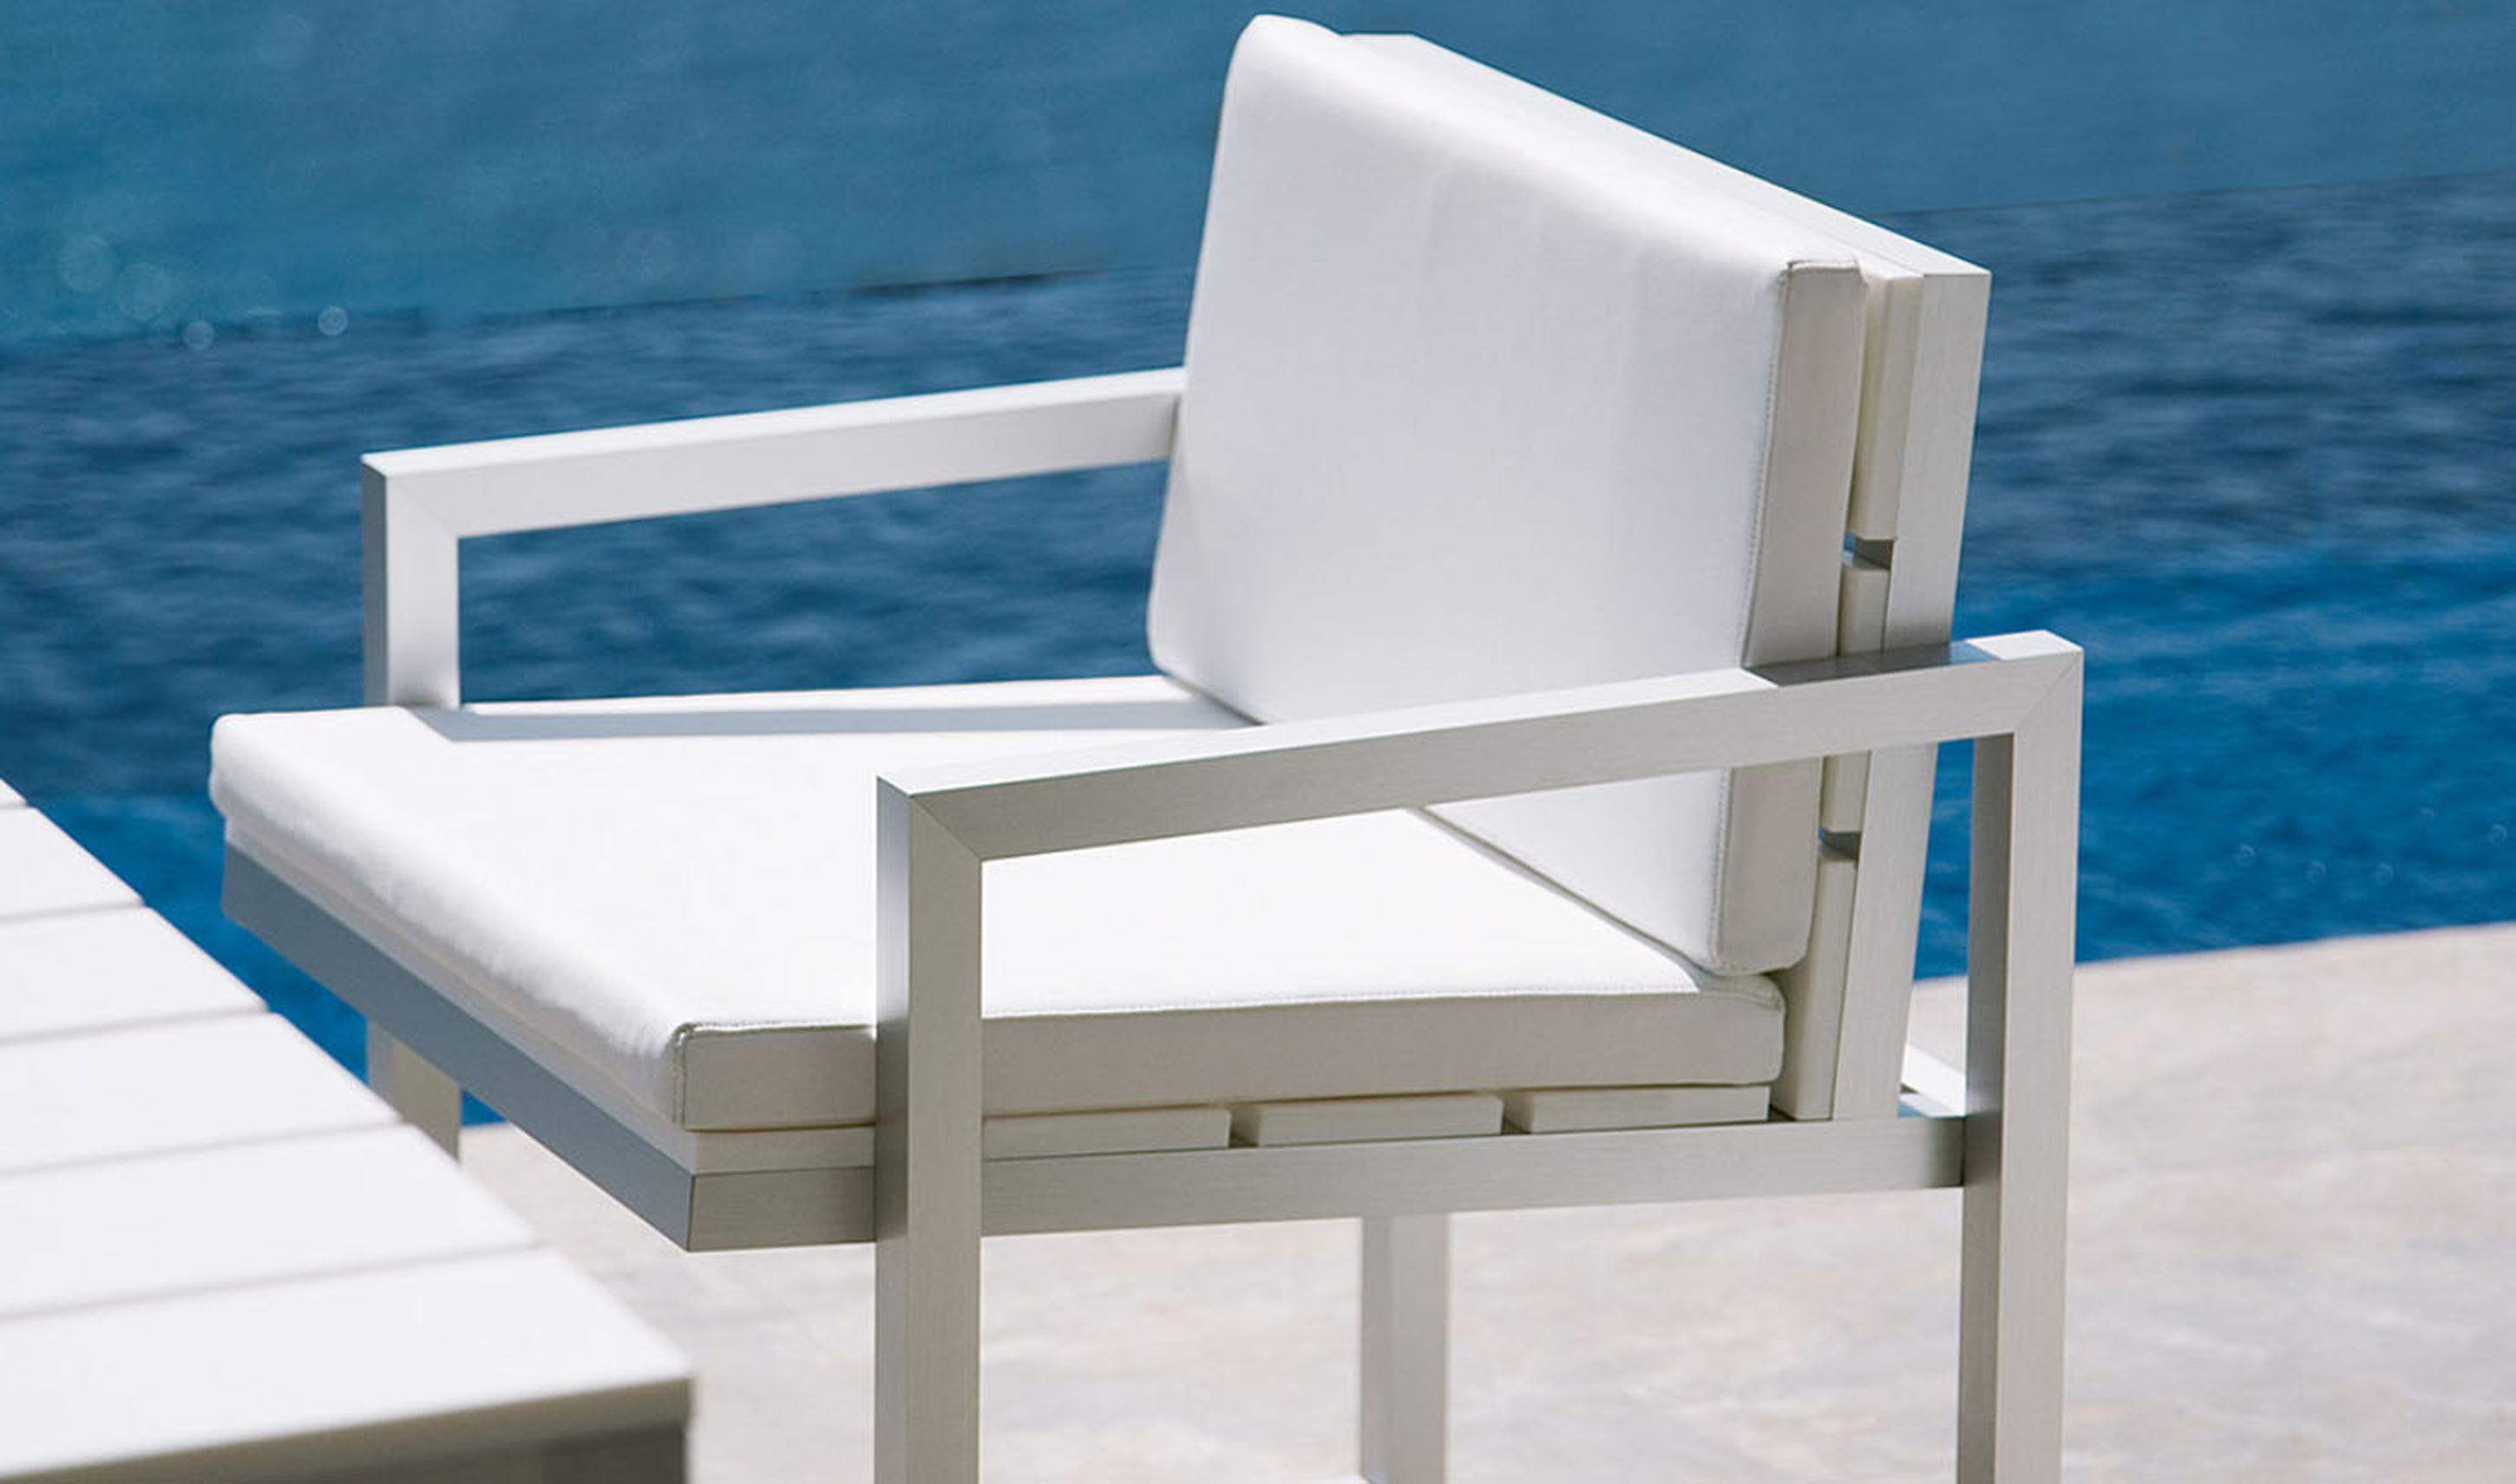 Lovely Modern Outdoor Dining Design Idea With White Dining Chair With White Seat Cushion Nice Modern Outdoor Dining Design Ideas (View 12 of 20)